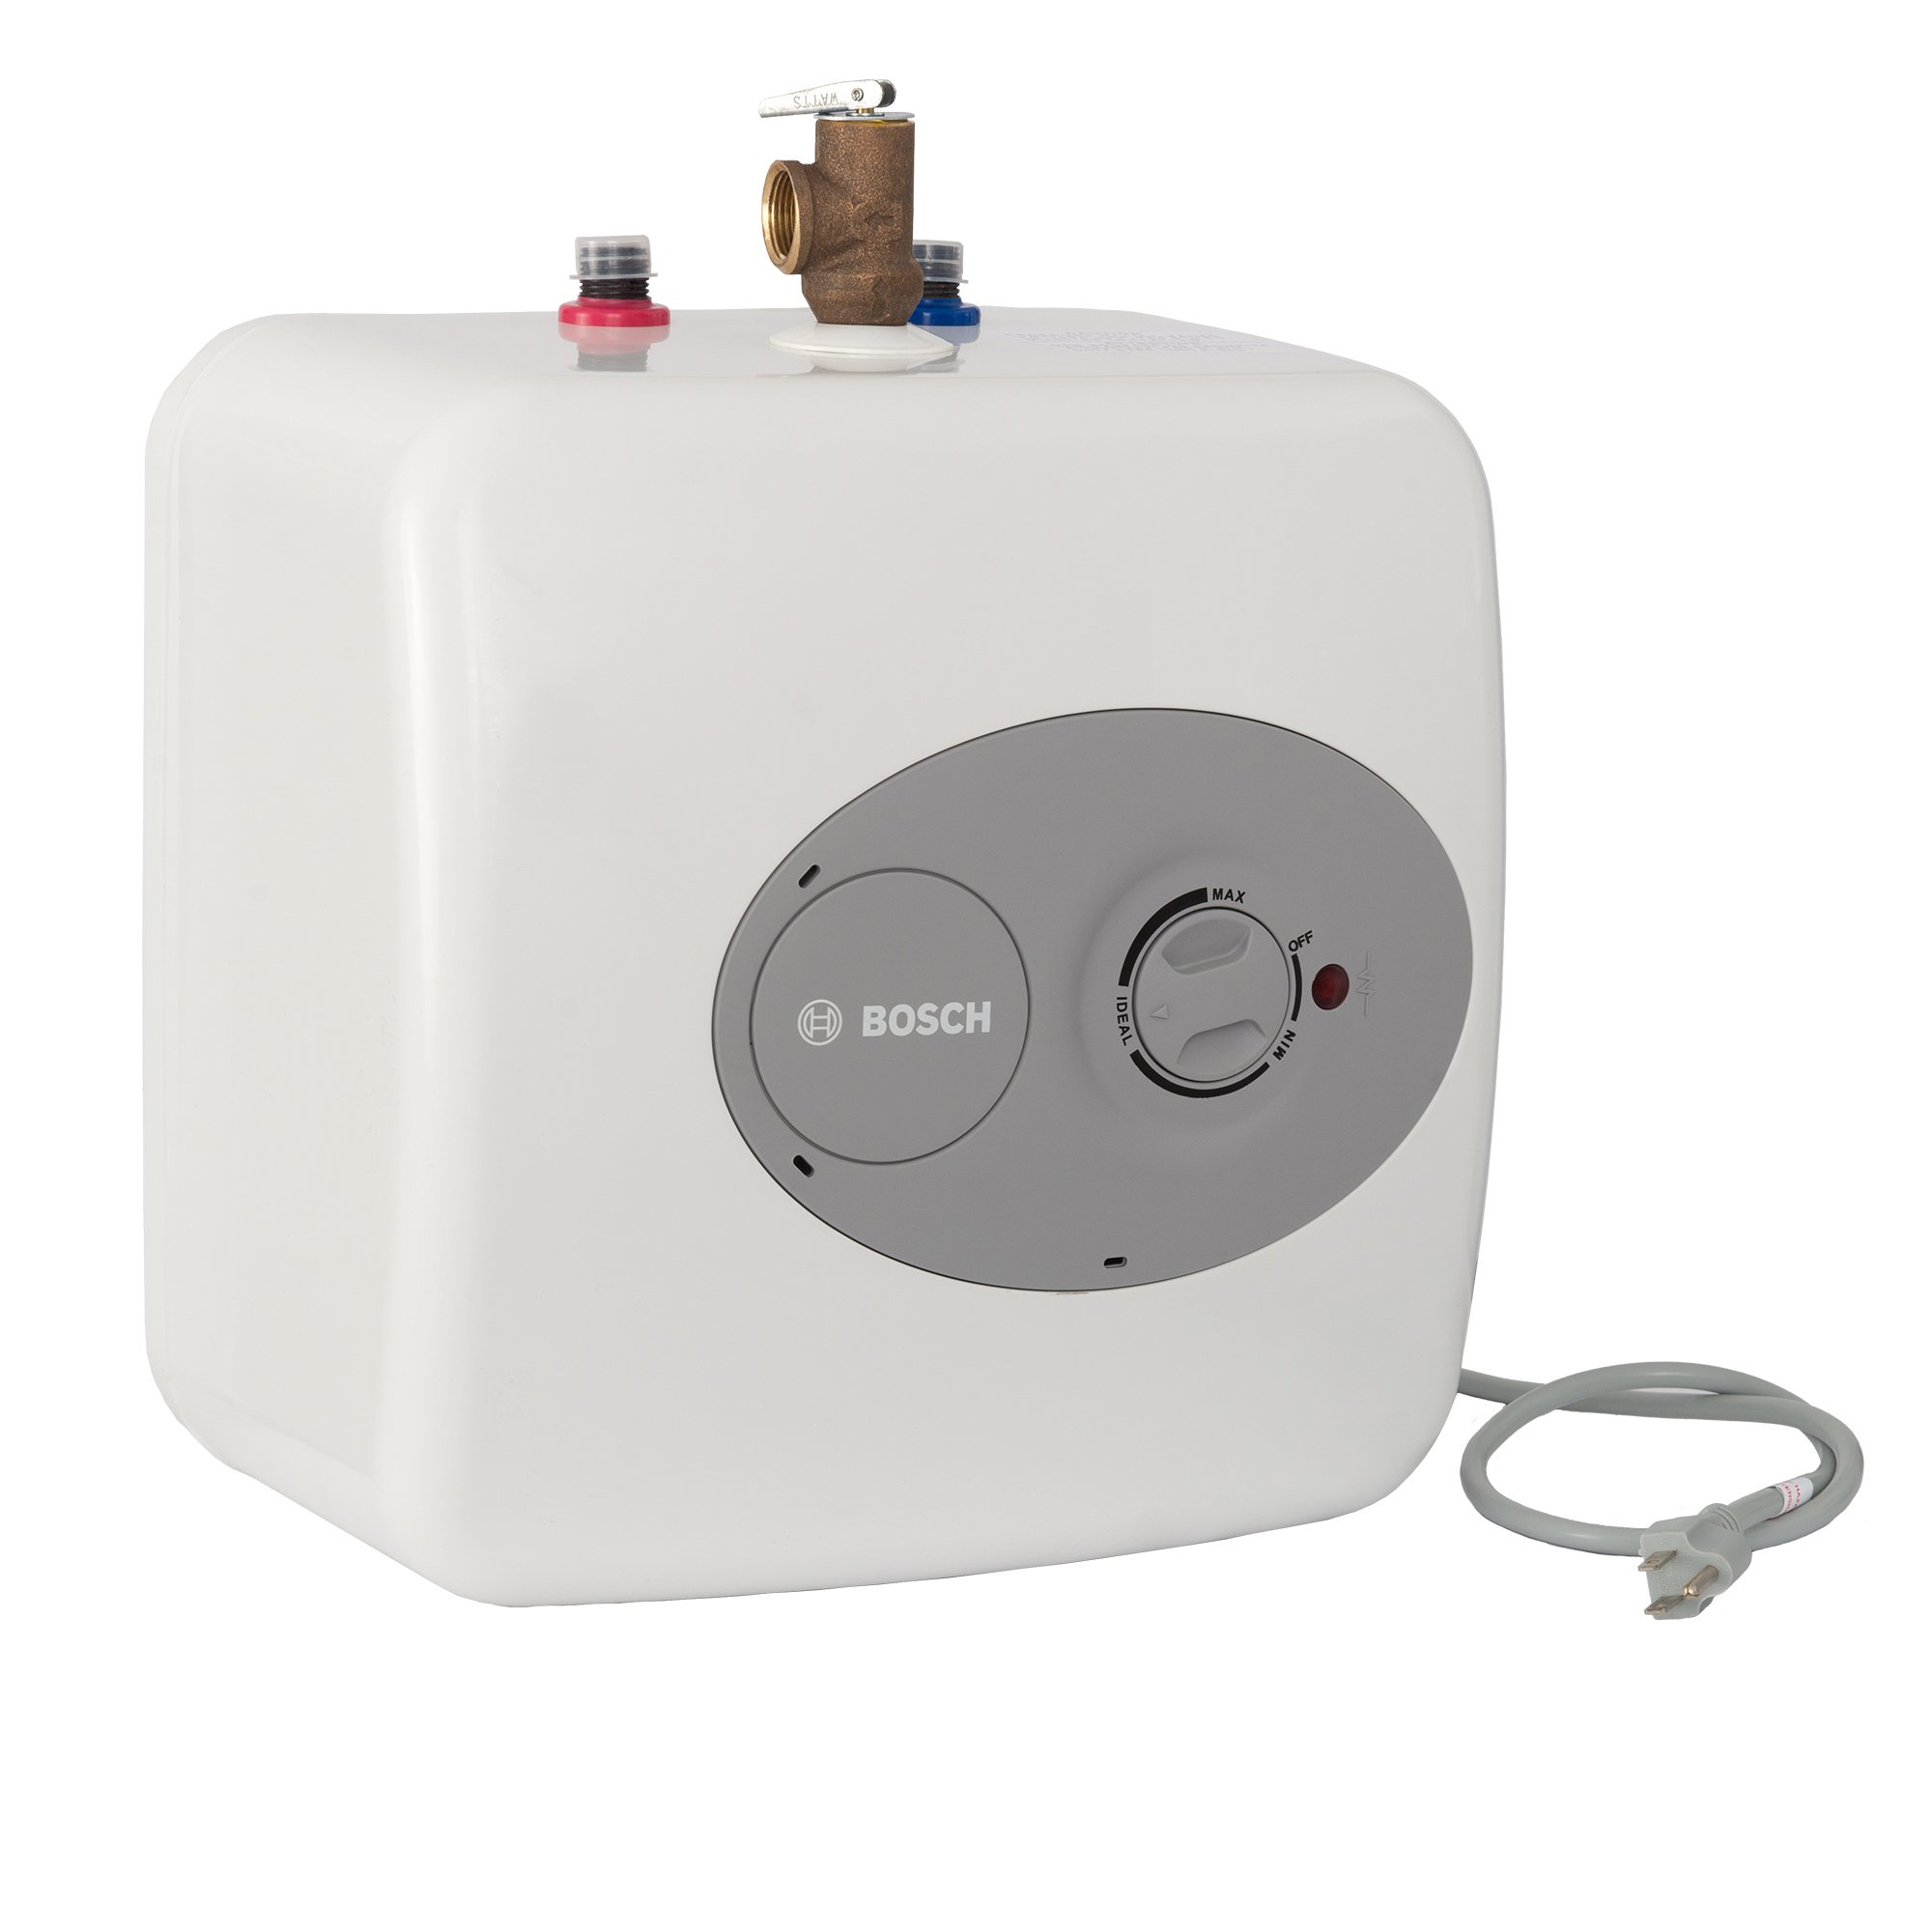 Bosch Electric Mini-Tank Water Heater Tronic 3000 T 2.5-Gallon (ES2.5)  - Eliminate Time for Hot Water - Shelf, Wall or Floor Mounted by Bosch Thermotechnology